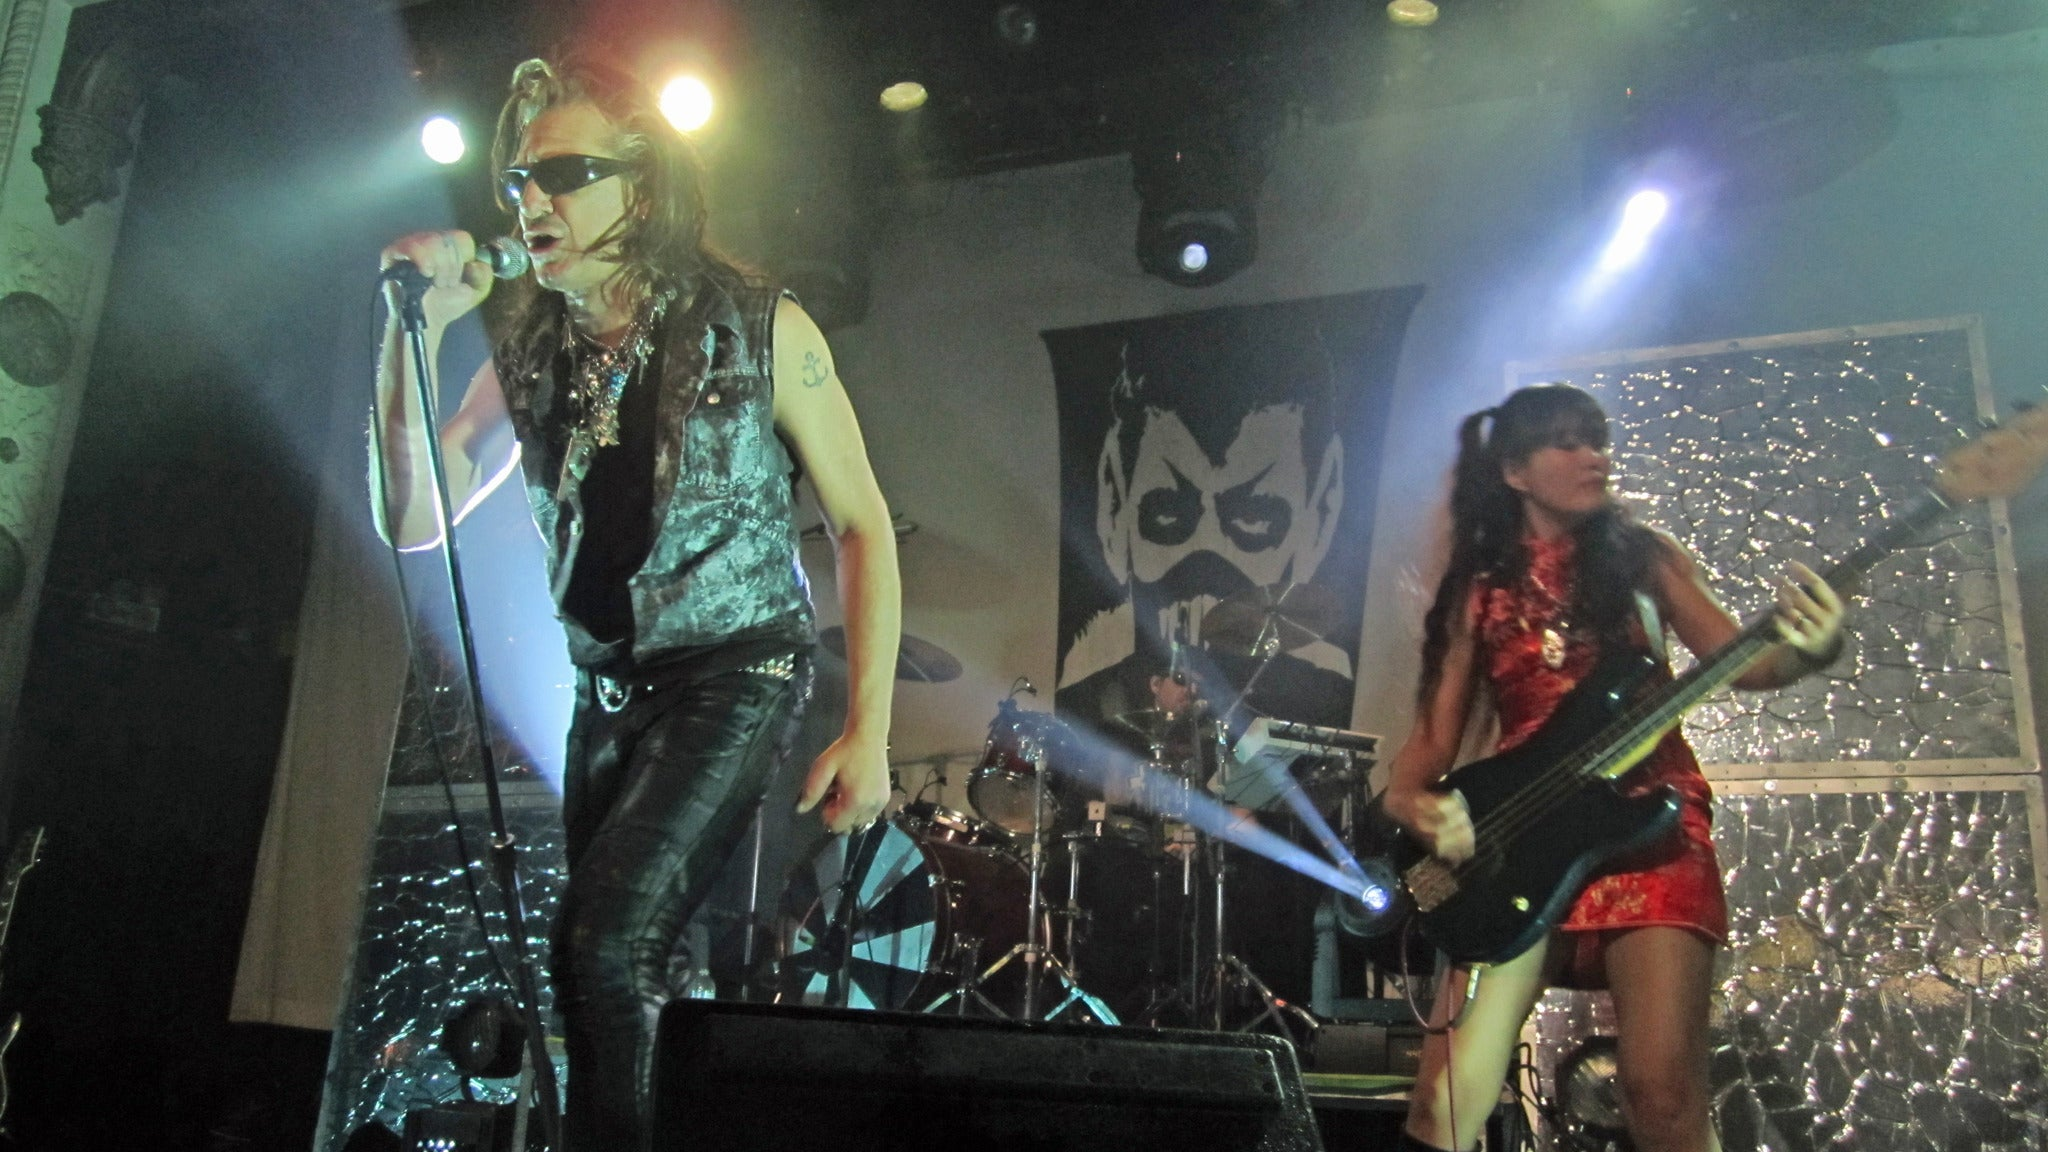 My Life with the Thrill Kill Kult at 191 Toole